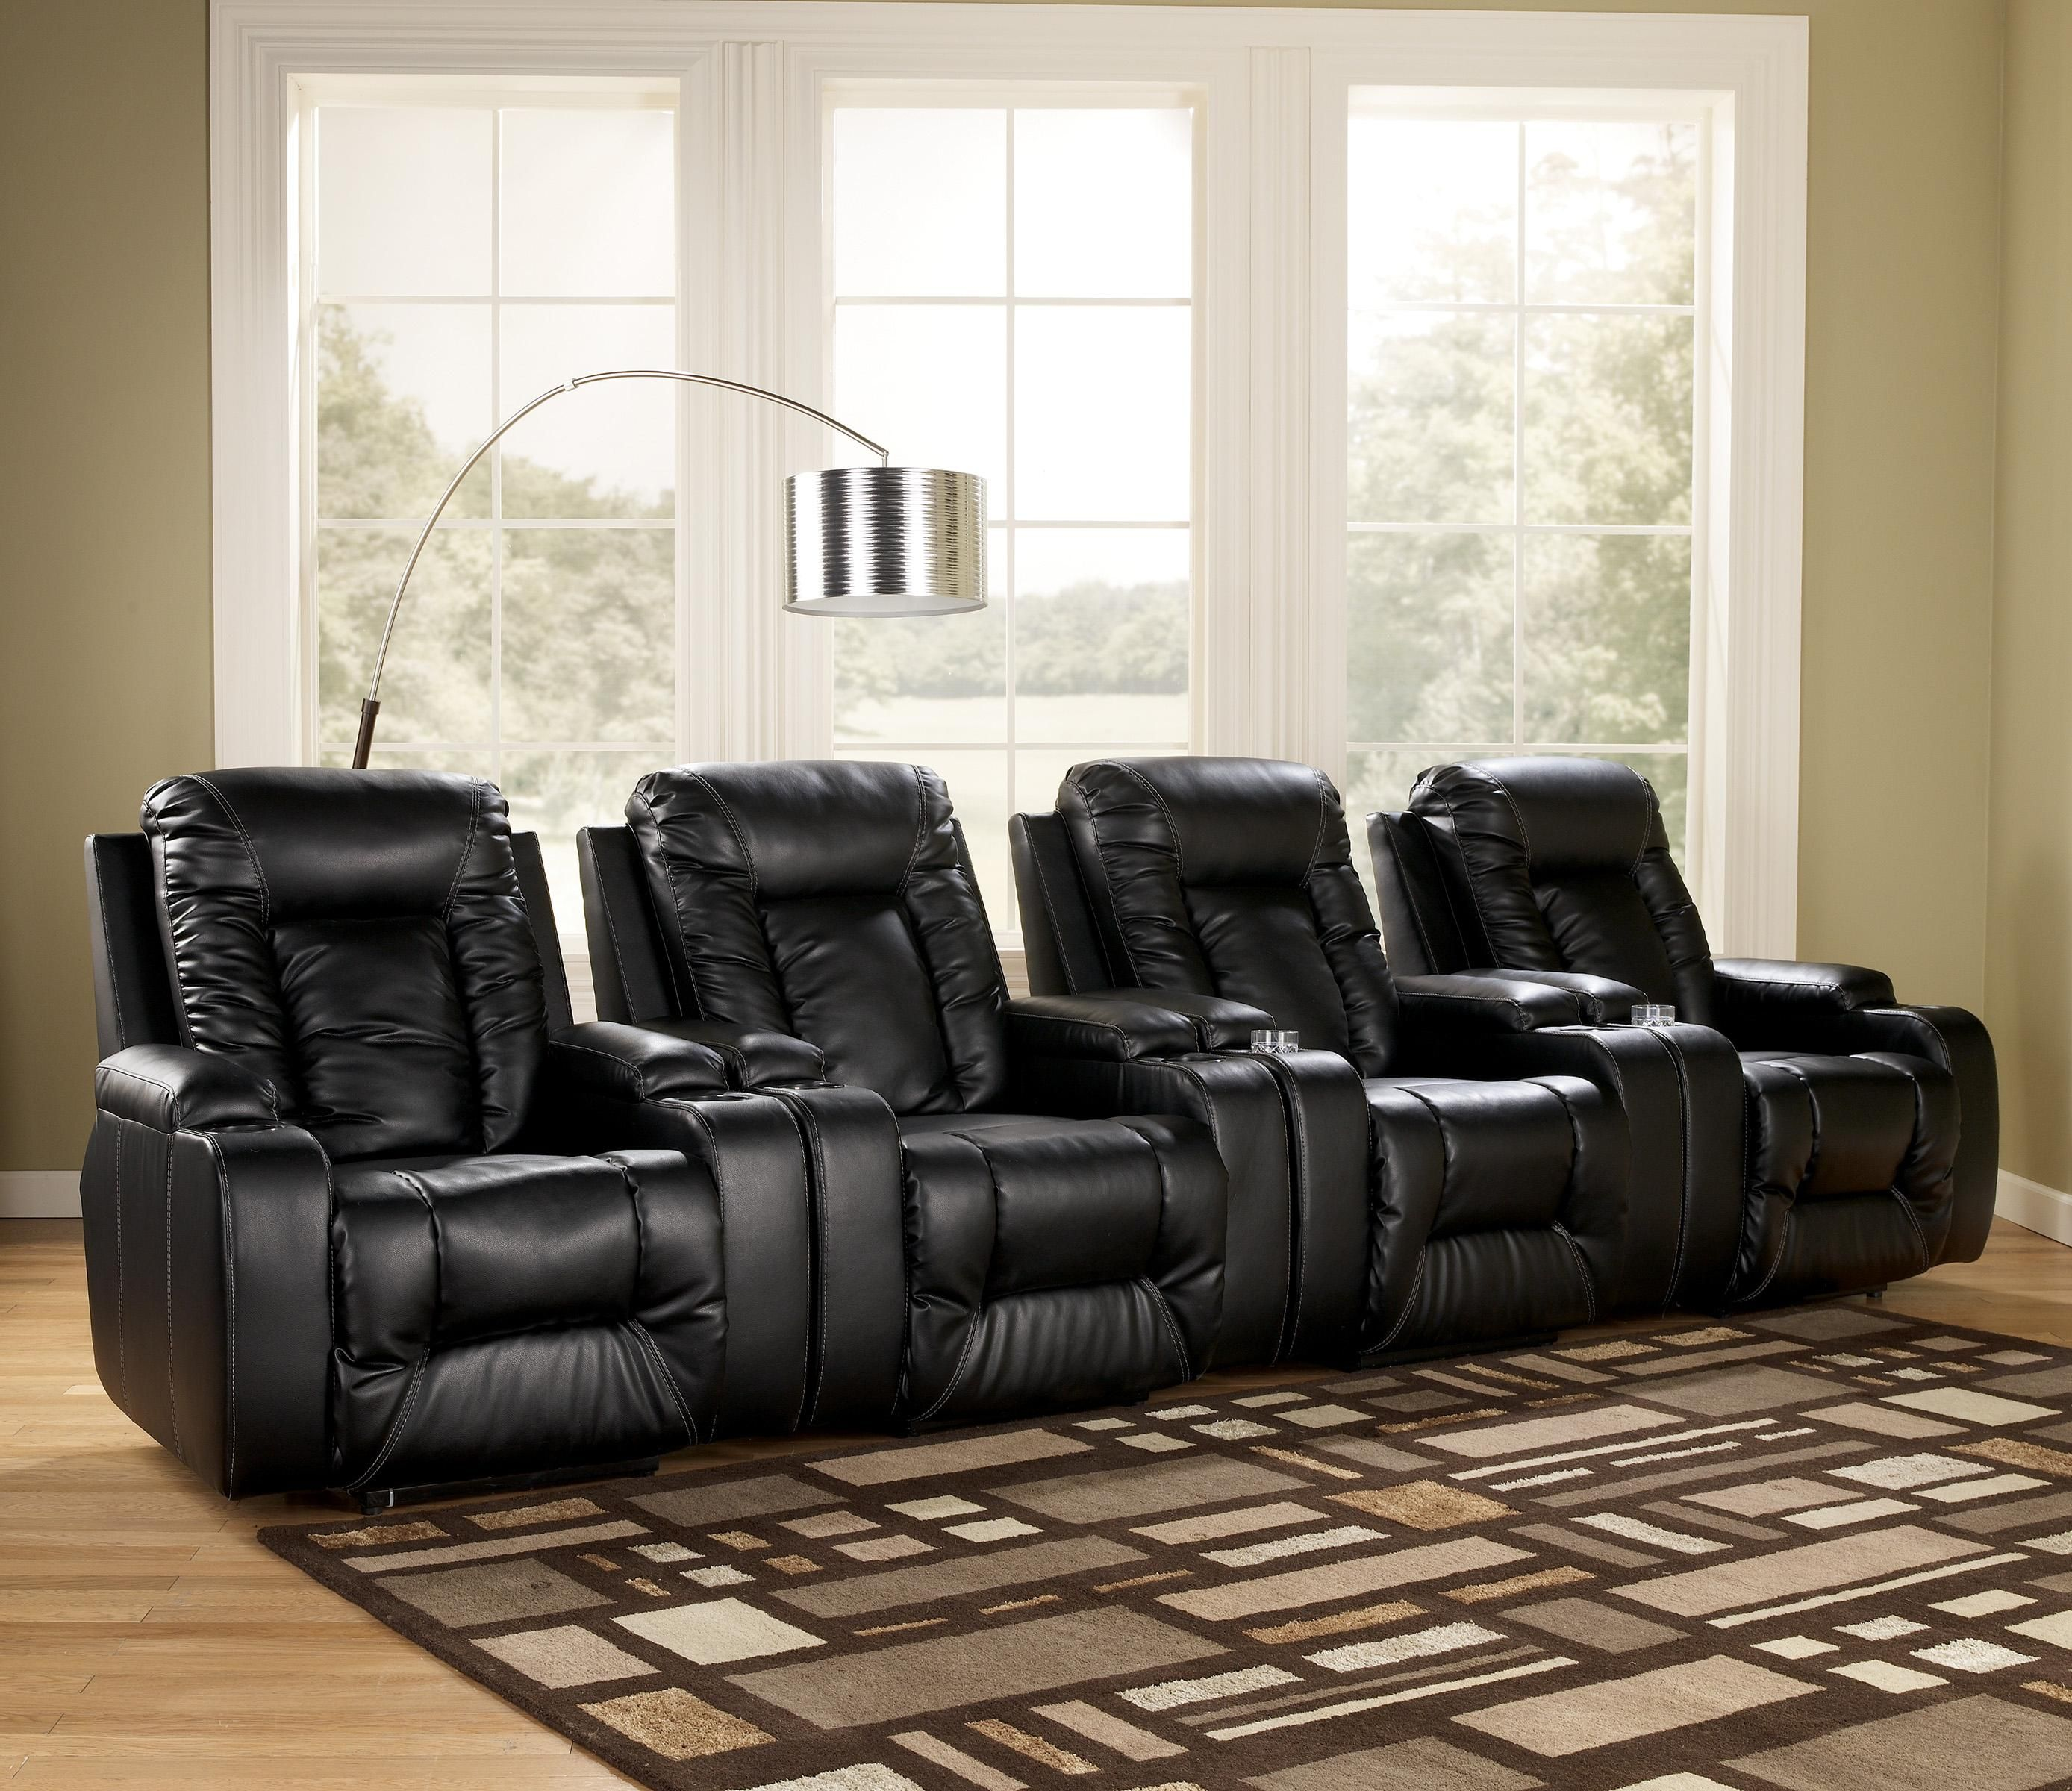 Matinee Durablend 174 Eclipse 4 Piece Theater Seating Group